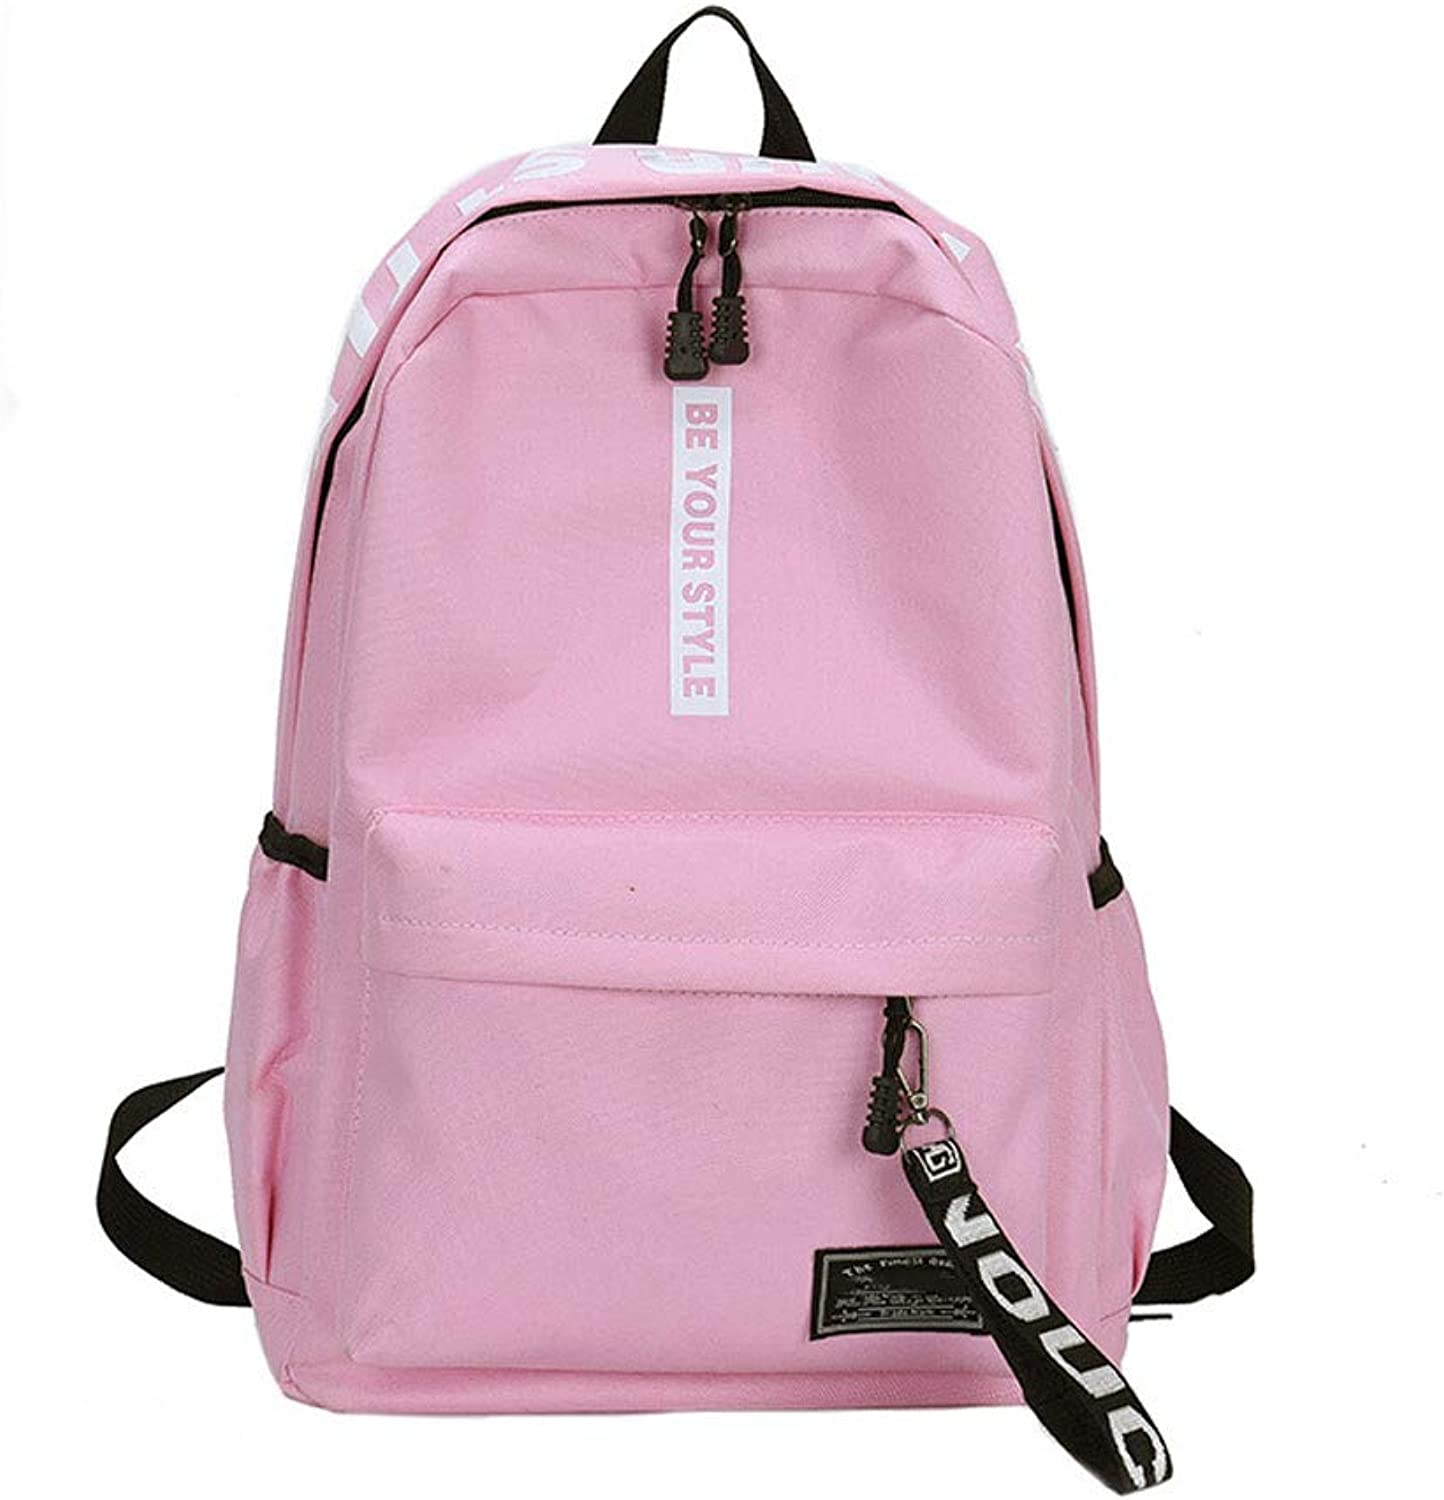 Laptop Bag Waterproof Backpack, Outdoor Travel Climbing Large Capacity Knapsack, Men's and Women's Student School High School Student Rucksack, Leisure Sports Backpack (color   Pink)